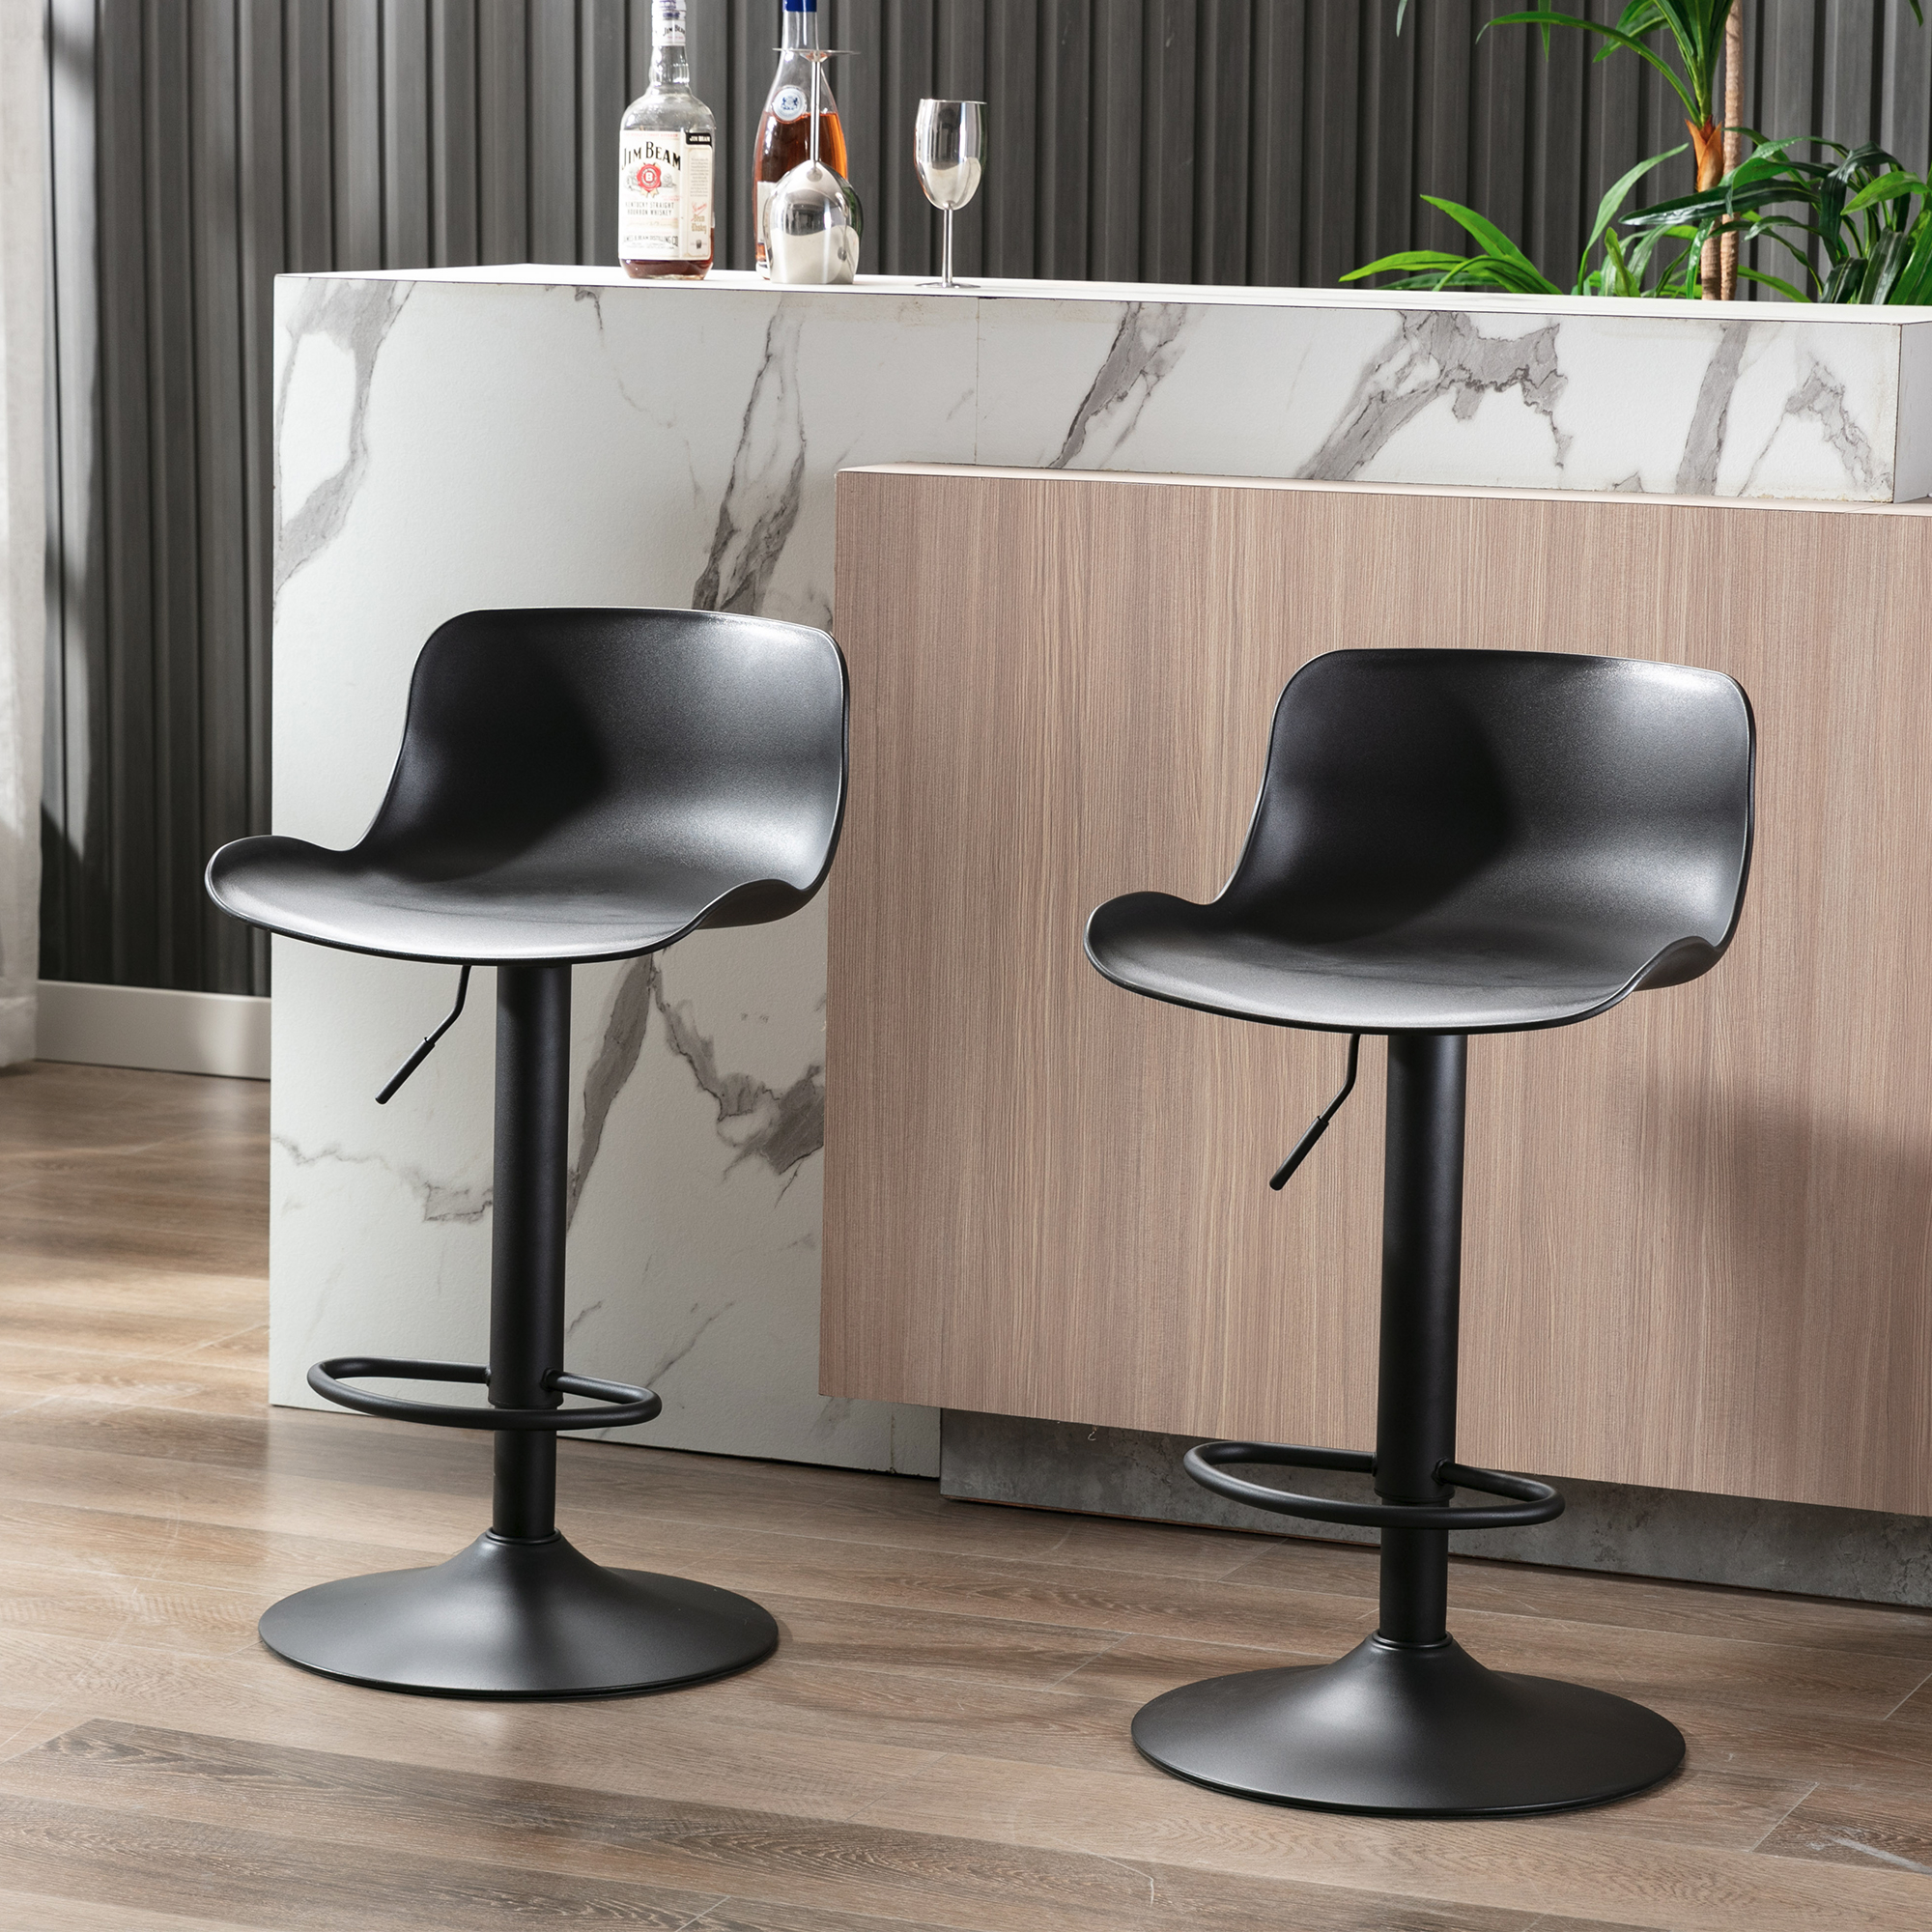 Swivel Bar Stools Set, Industrial Metal Counter Height Barstools Set,  Contemporary Dining Room Bar Stools Chair Set, Kitchen/Dining Room Swivel  Bar ...